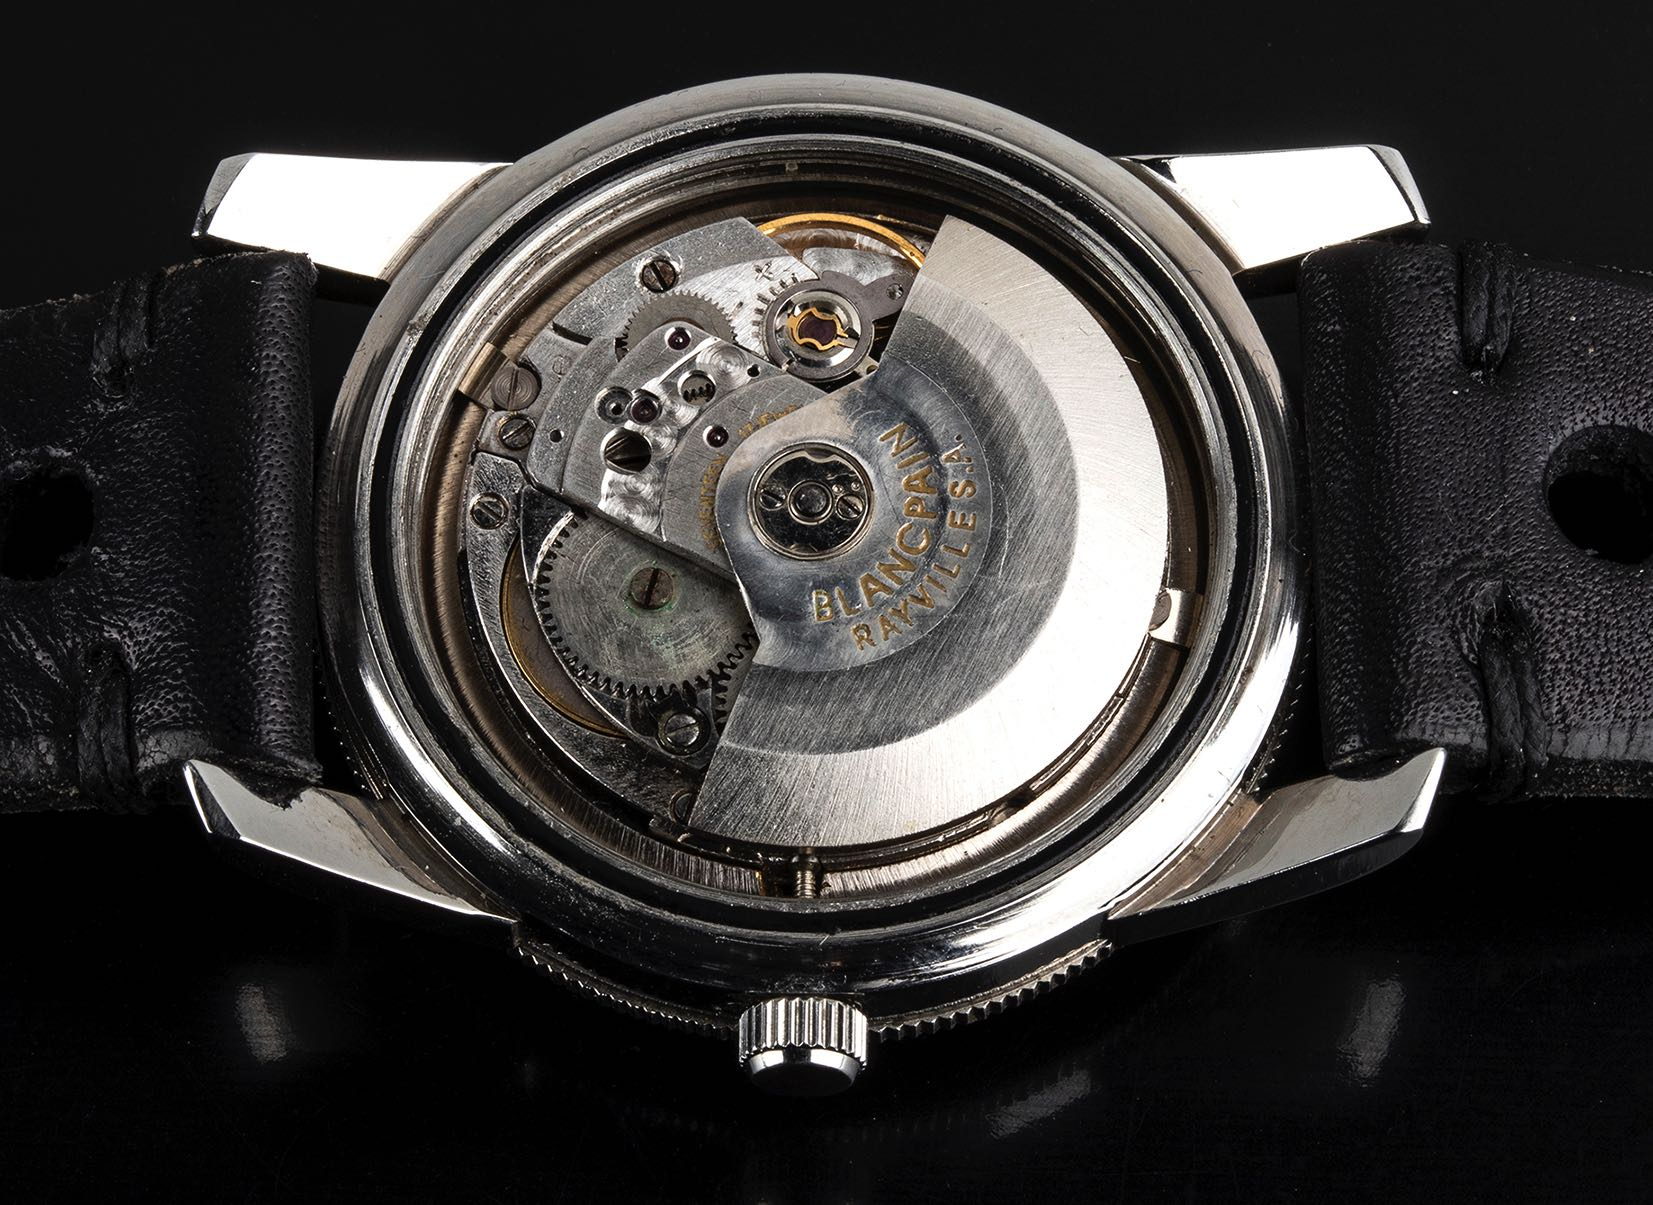 Blancpain Fifty Phatoms Aqua lung no radiations dial - Image 2 of 4